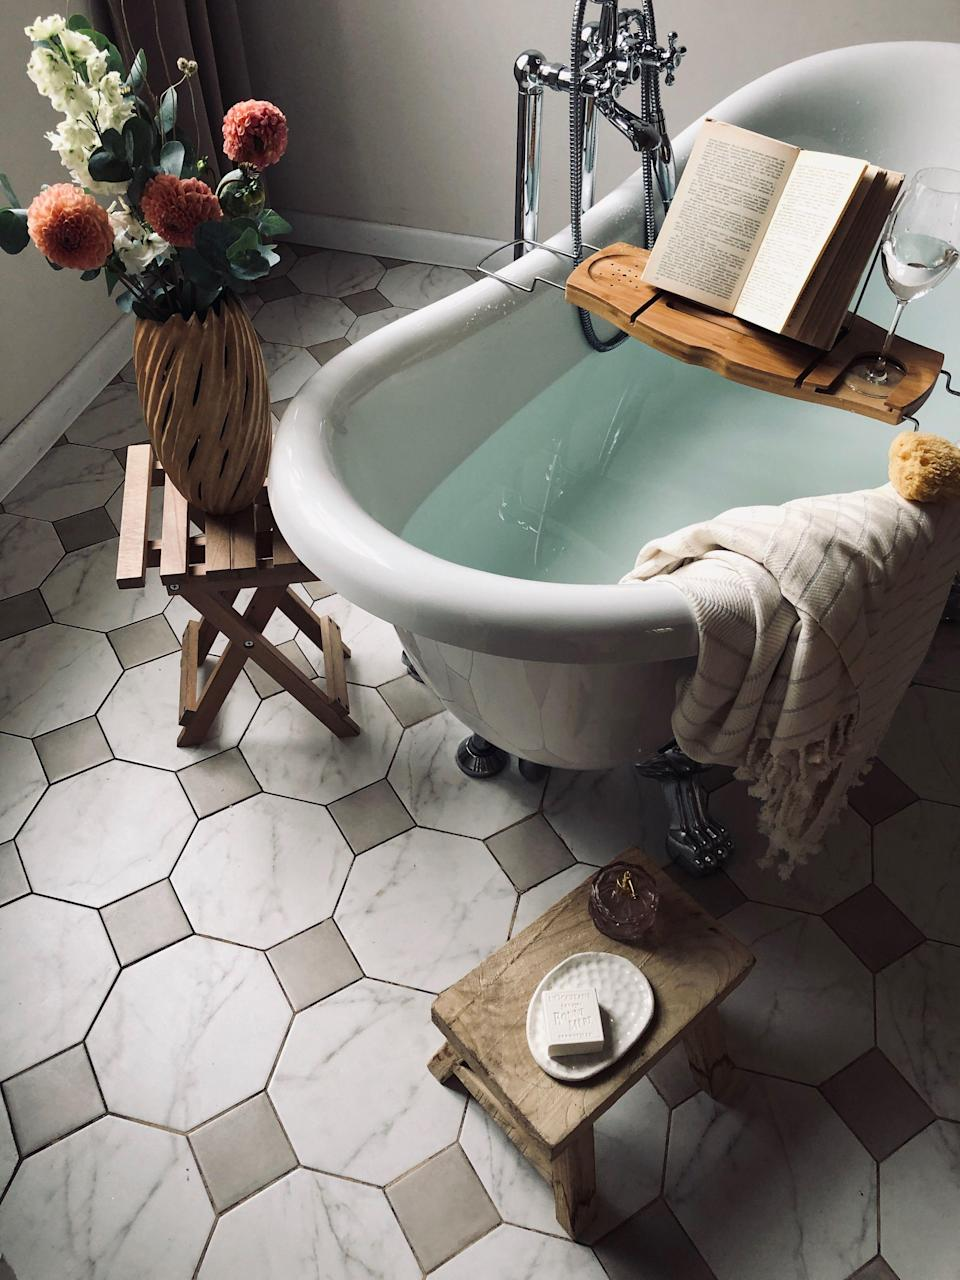 """<p>It's been a long week, so you draw a <a href=""""https://www.oprahdaily.com/beauty/g26976206/best-bubble-bath/"""" rel=""""nofollow noopener"""" target=""""_blank"""" data-ylk=""""slk:warm bubble bath"""" class=""""link rapid-noclick-resp"""">warm bubble bath</a>. A <a href=""""https://www.oprahdaily.com/life/g36055948/summer-candles/"""" rel=""""nofollow noopener"""" target=""""_blank"""" data-ylk=""""slk:heavenly scented candle"""" class=""""link rapid-noclick-resp"""">heavenly scented candle</a> is burning as you put on your <a href=""""https://www.oprahdaily.com/beauty/g34764304/best-spa-headbands/"""" rel=""""nofollow noopener"""" target=""""_blank"""" data-ylk=""""slk:spa headband"""" class=""""link rapid-noclick-resp"""">spa headband</a> and submerge into the water. But, as soon as you do, you realize you forgot your <a href=""""https://www.oprahdaily.com/life/food/g27412334/cheap-wine-brands/"""" rel=""""nofollow noopener"""" target=""""_blank"""" data-ylk=""""slk:glass of wine"""" class=""""link rapid-noclick-resp"""">glass of wine</a> and there's nowhere to prop up your <a href=""""https://www.oprahdaily.com/entertainment/books/g32909485/best-books-about-summer-romance/"""" rel=""""nofollow noopener"""" target=""""_blank"""" data-ylk=""""slk:juicy new romance novel"""" class=""""link rapid-noclick-resp"""">juicy new romance novel</a>. Sounds like it's finally time to get a bathtub tray. </p><p>Designed to rest over your tub, a bathtub trays keep your self-care essentials within reach as you soak. Many function as caddies with organizational compartments for soap, a loofah, your washcloth, a great book, and of course, that aforementioned glass of wine. A classic wooden teak or bamboo board contributes to the zen vibe and looks beautiful over a freestanding vessel—even when it's not in use. Adjustable metal or plastic caddies and even swivel trays are convenient as well, especially for smaller tubs or ones that sit against a wall (they also make for easy storage). <br></p><p>No matter your preference, these will all help you <a href=""""https://www.oprahdaily.com/life/a35843899/oprah-bathtub-routine/"""" rel"""